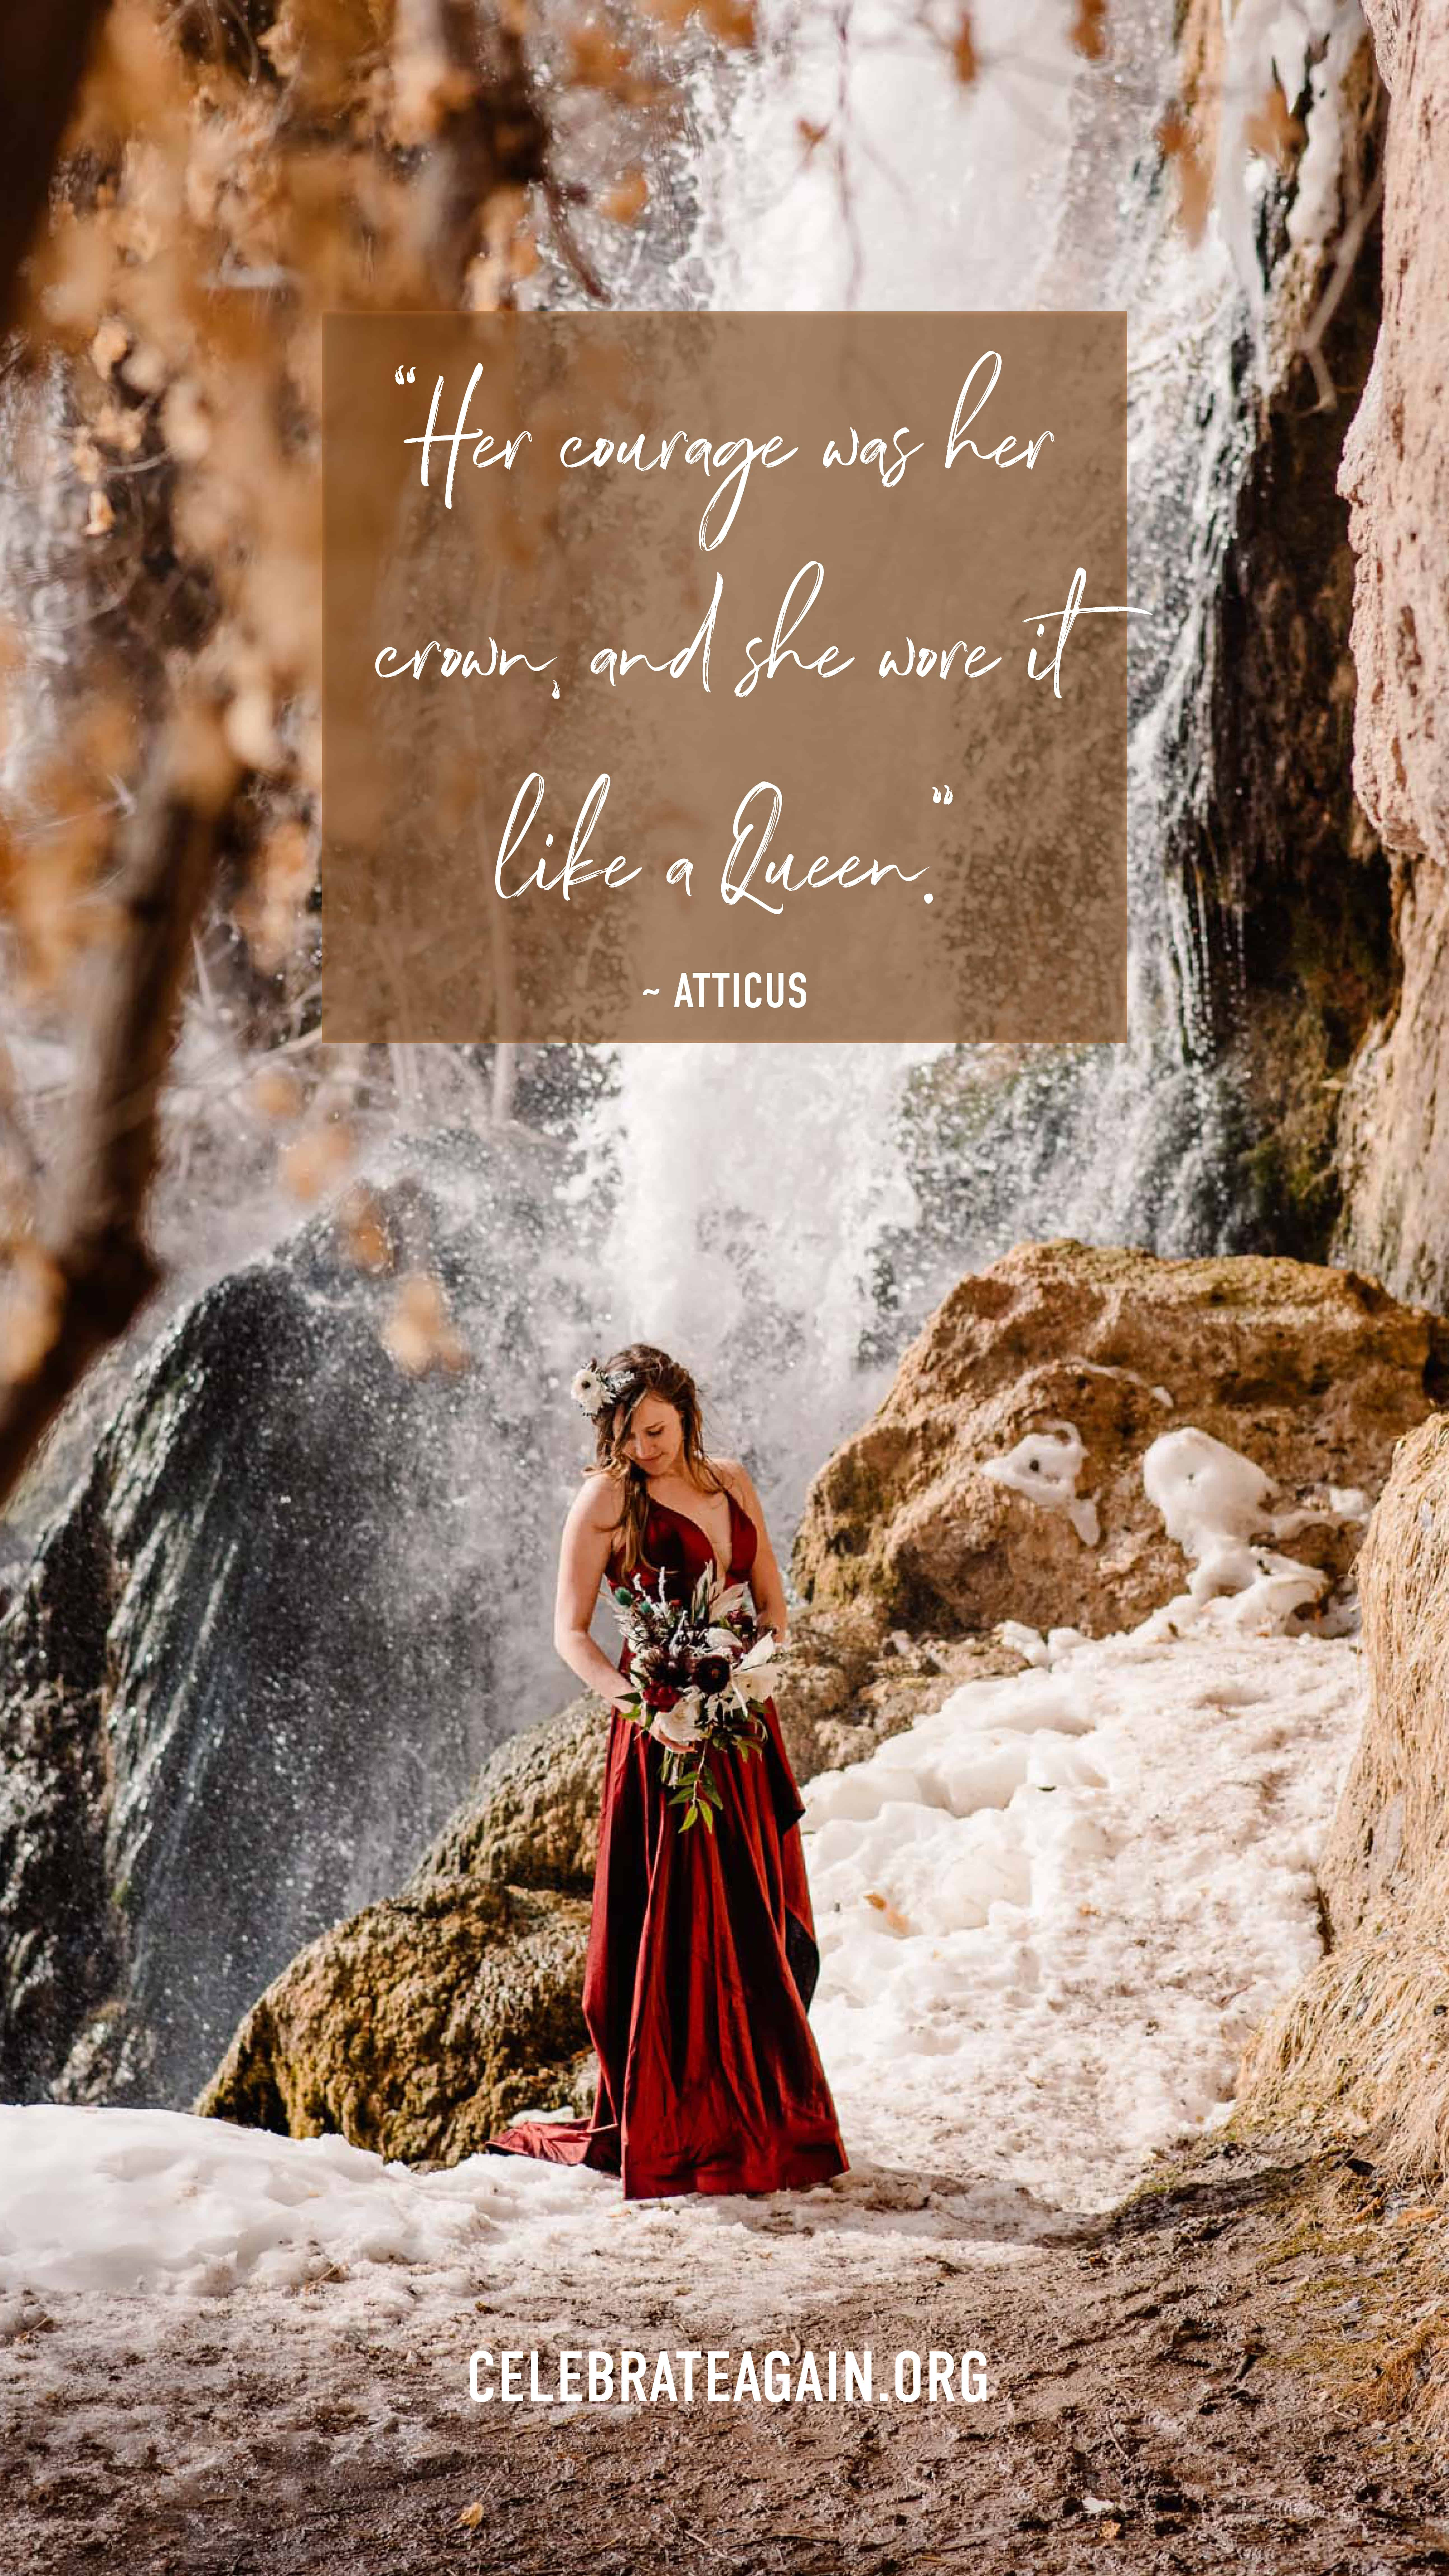 """short love quote """"Her courage was her crown, and she wore it like a Queen."""" ― Atticus female in red dress by a waterfall wearing a flower crown holding flowers, image by celebrateagain.org"""